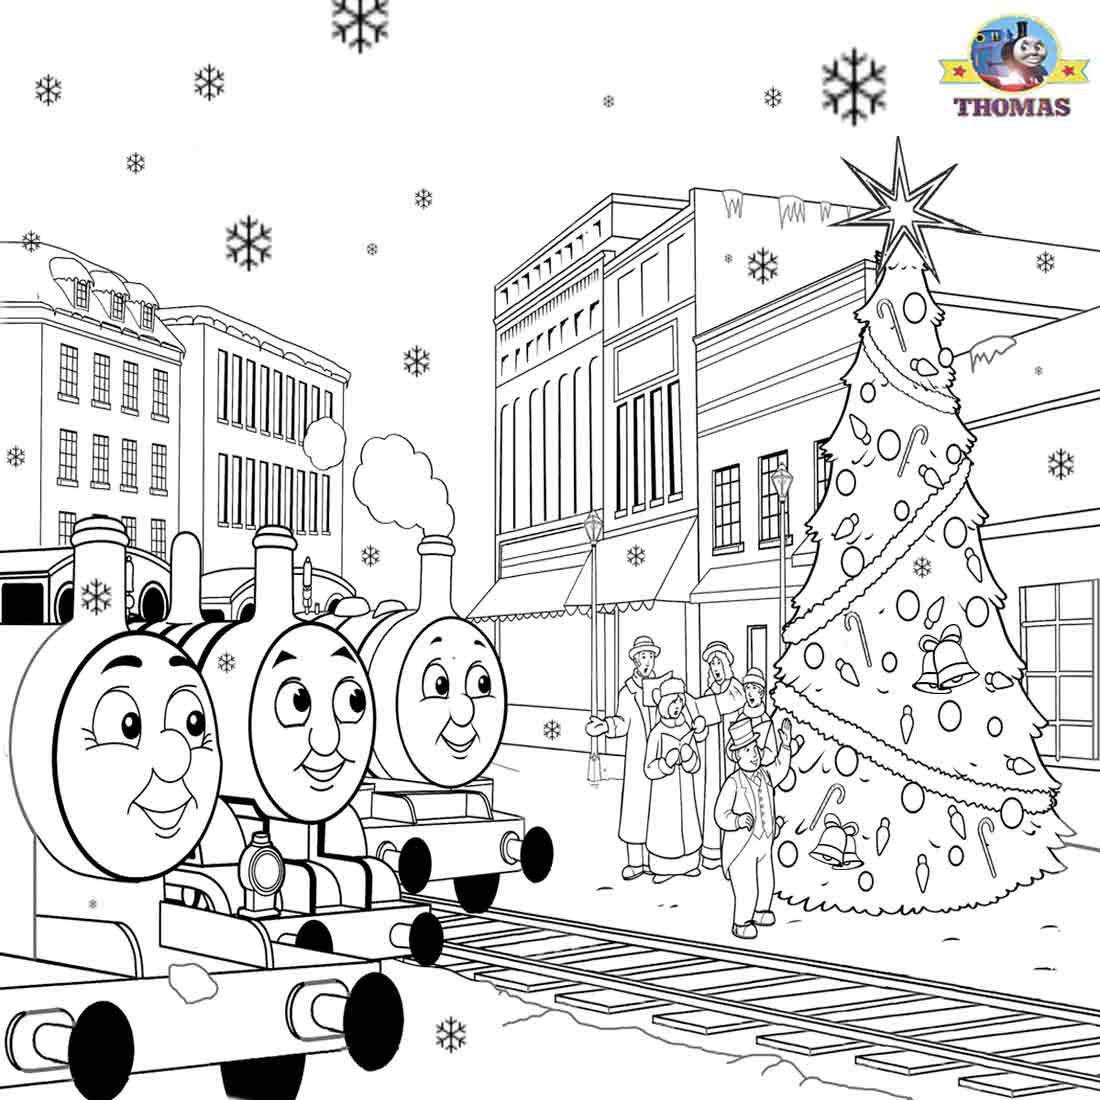 Train coloring pages for toddlers - James Percy The Train Thomas Christmas Coloring Sheets For Children Printable Pictures Xmas Clip Art